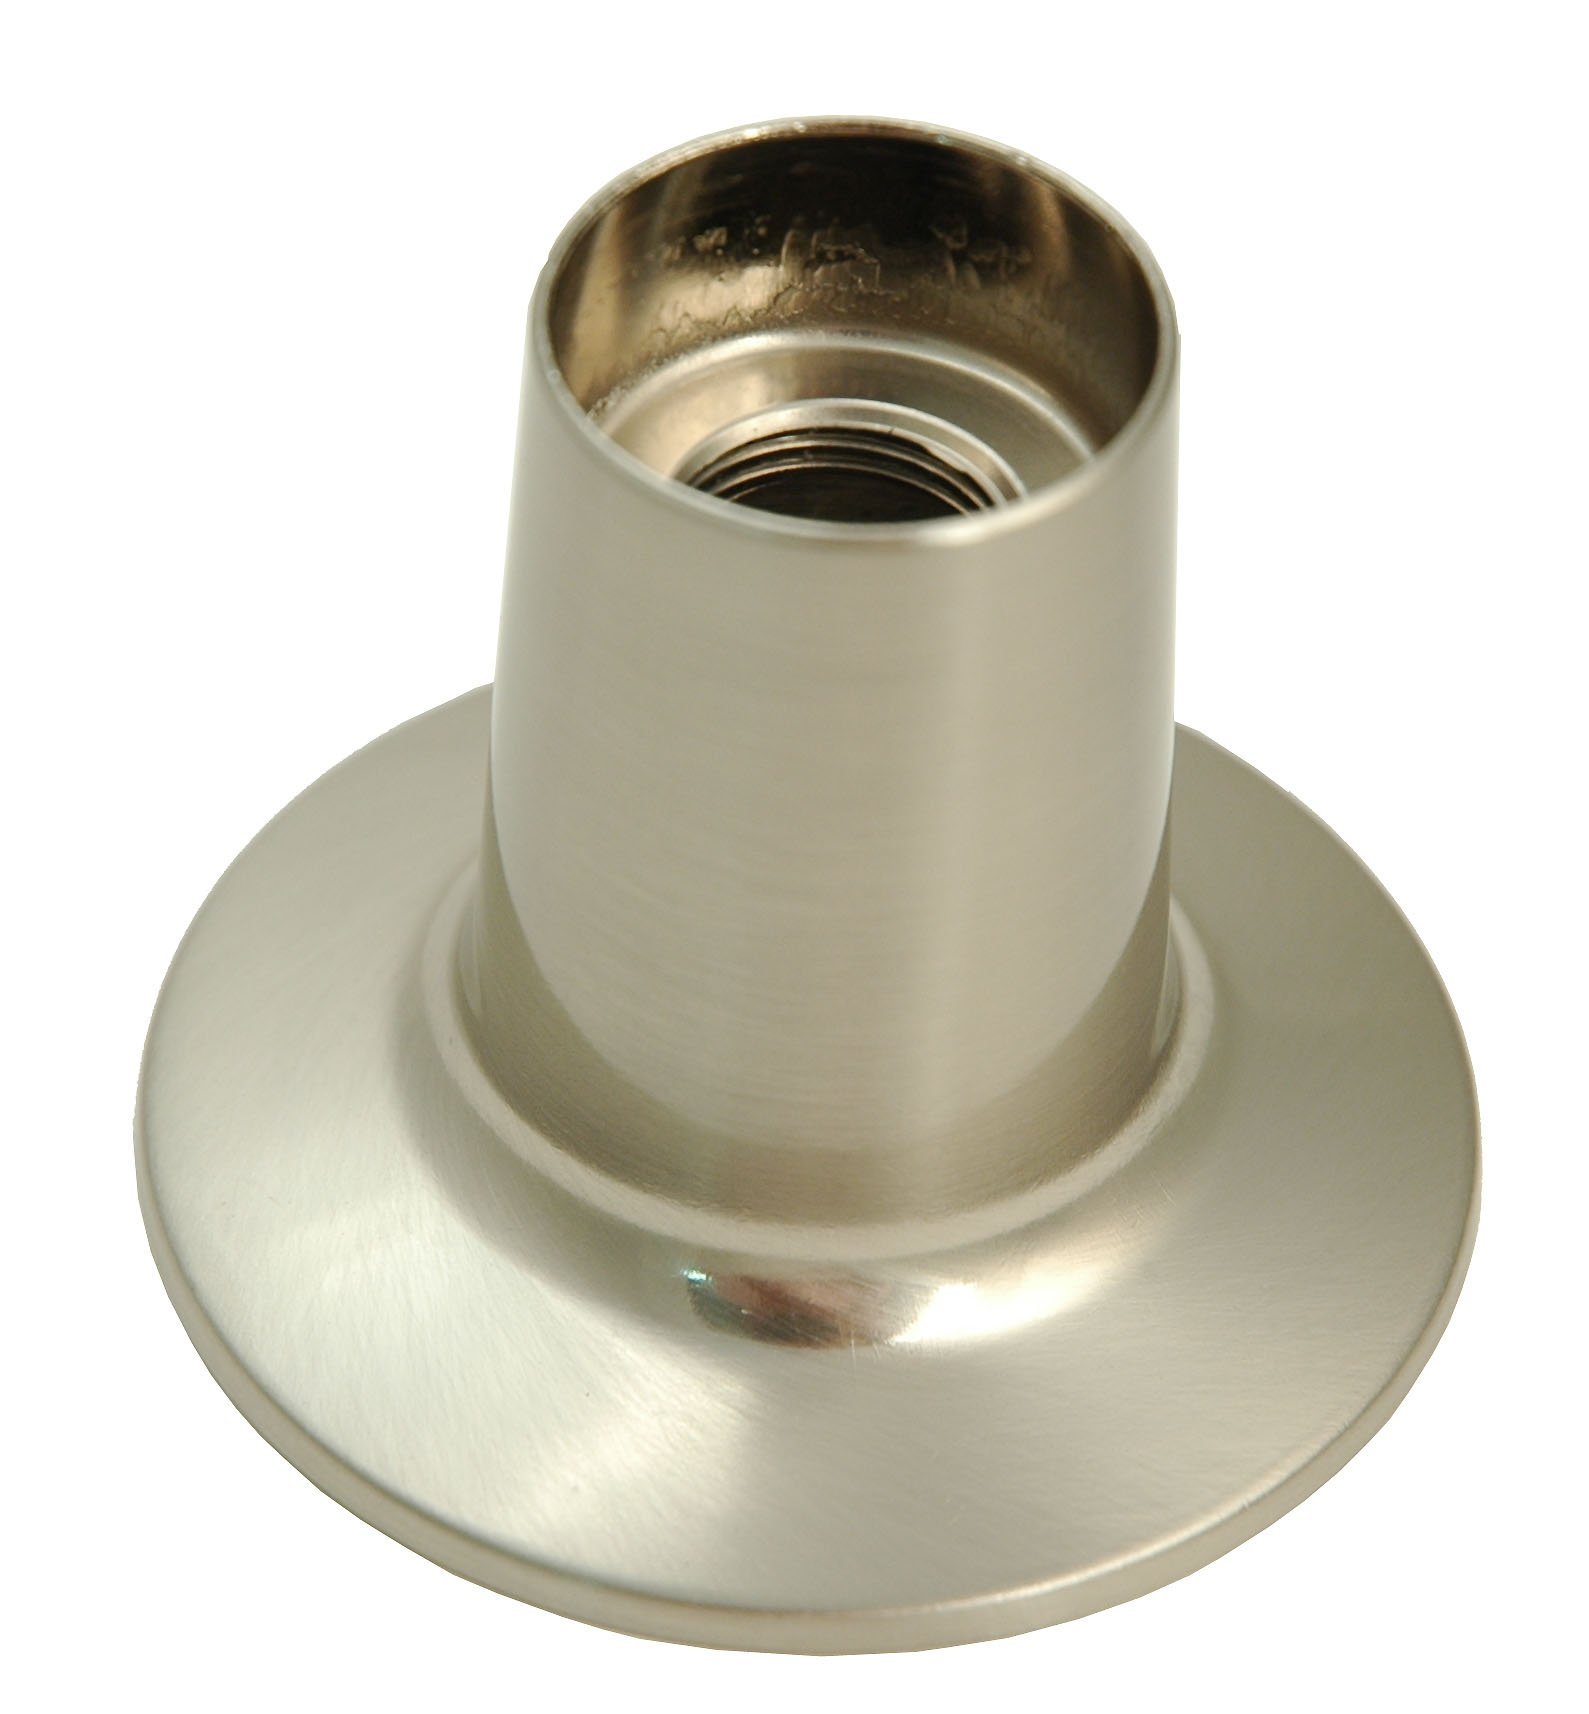 3-handle Tub & Shower Faucet, W. Compression Stems - By Plumb USA (Satin Nickel Finish) by PlumbUSA